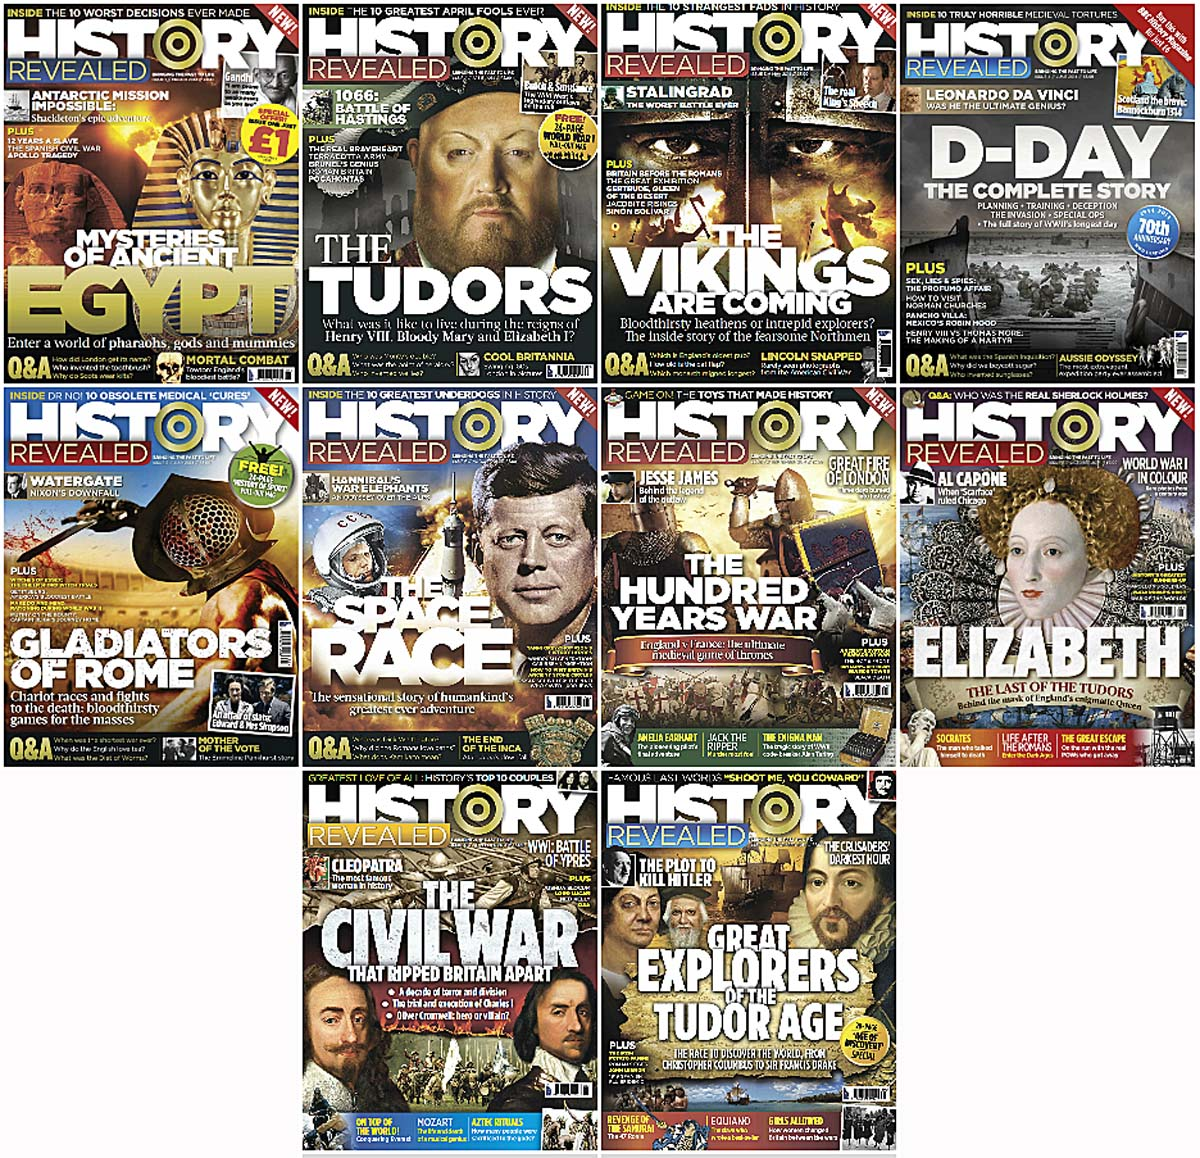 History Revealed - Full Year 2014 Issues Collection